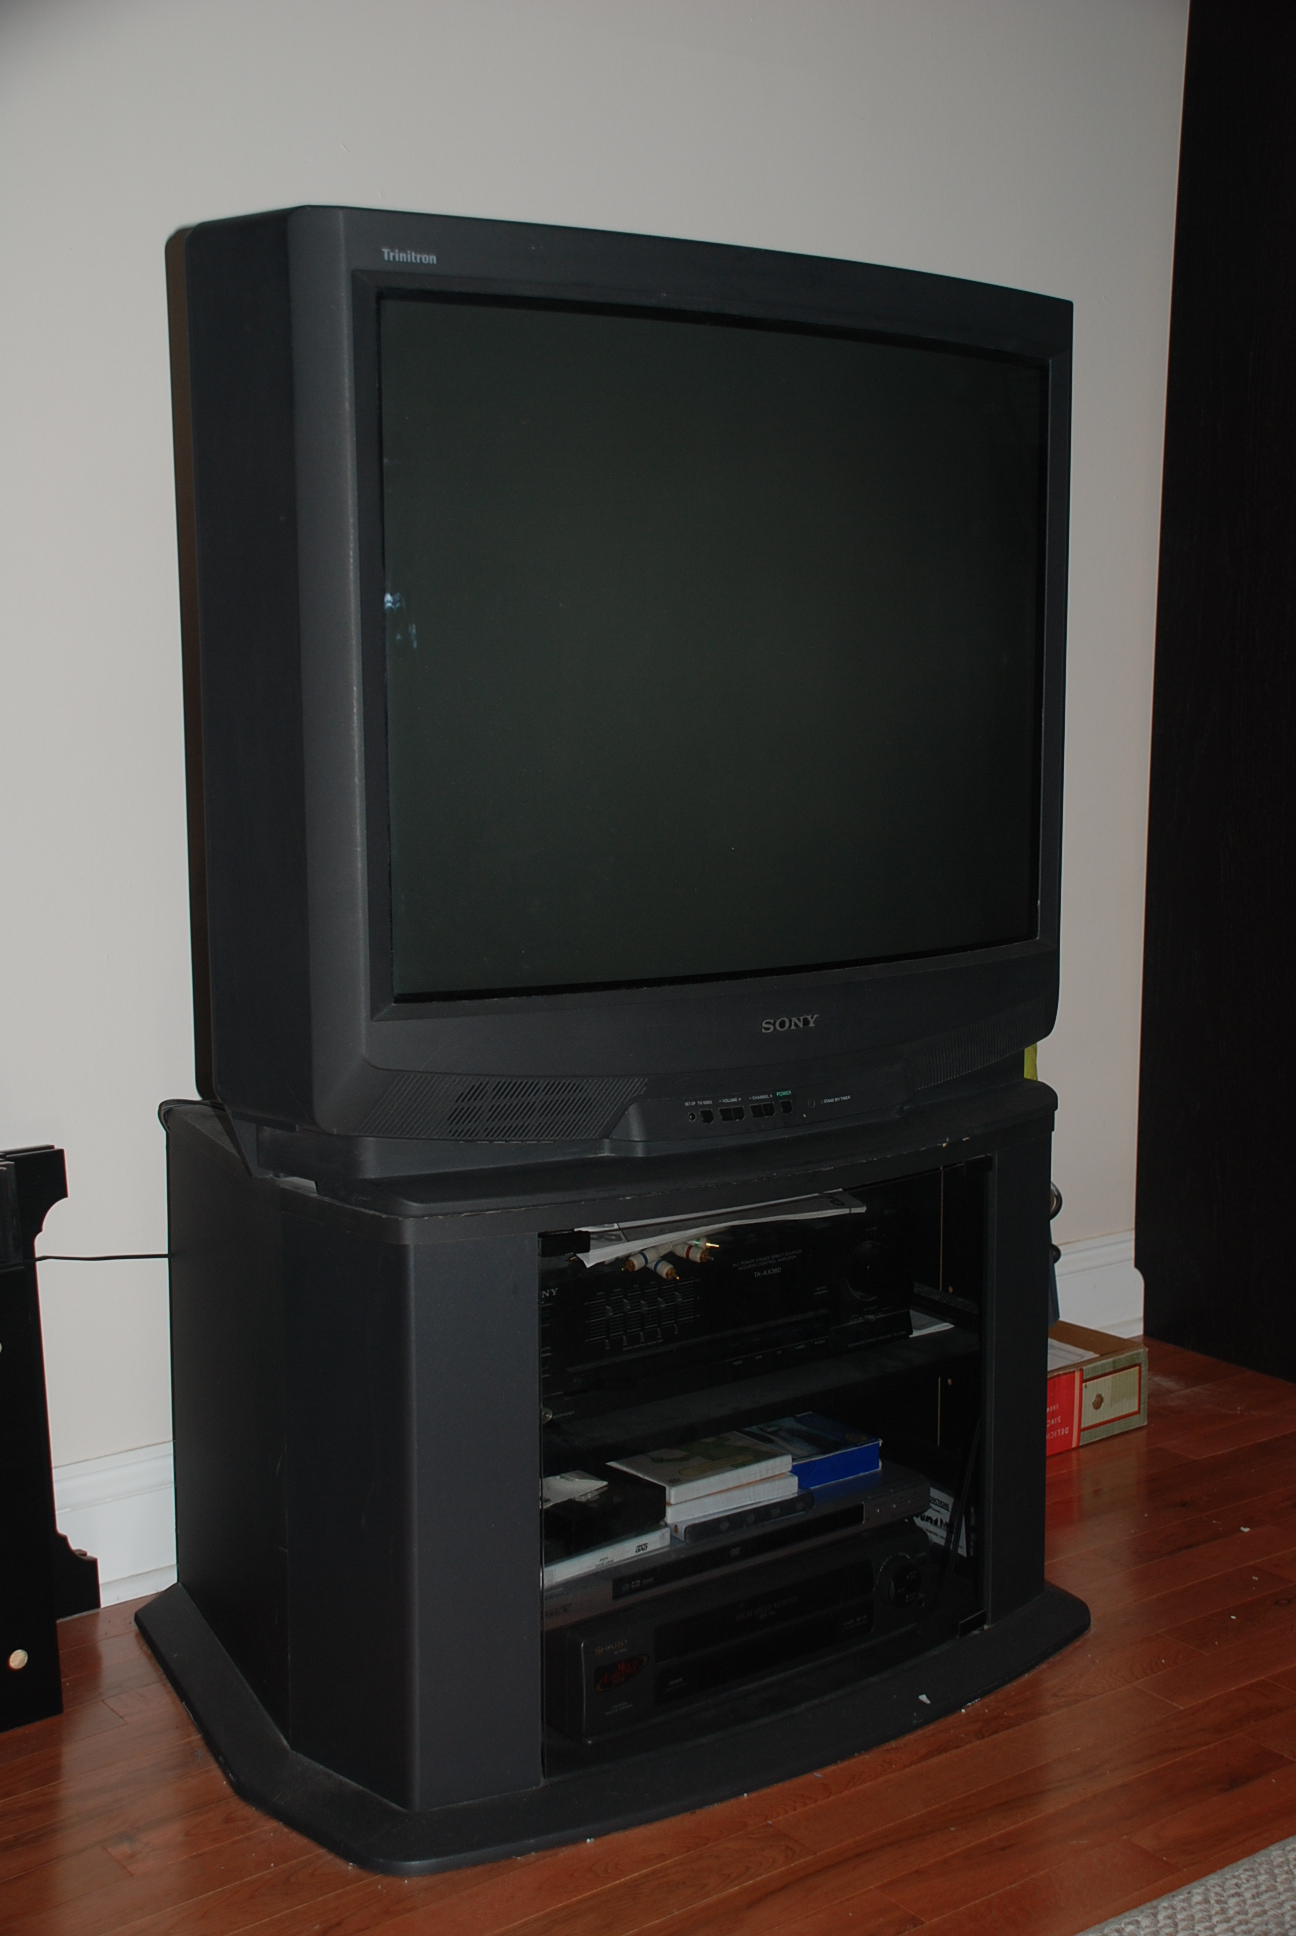 sony tv stand. sony tv front view tv stand k